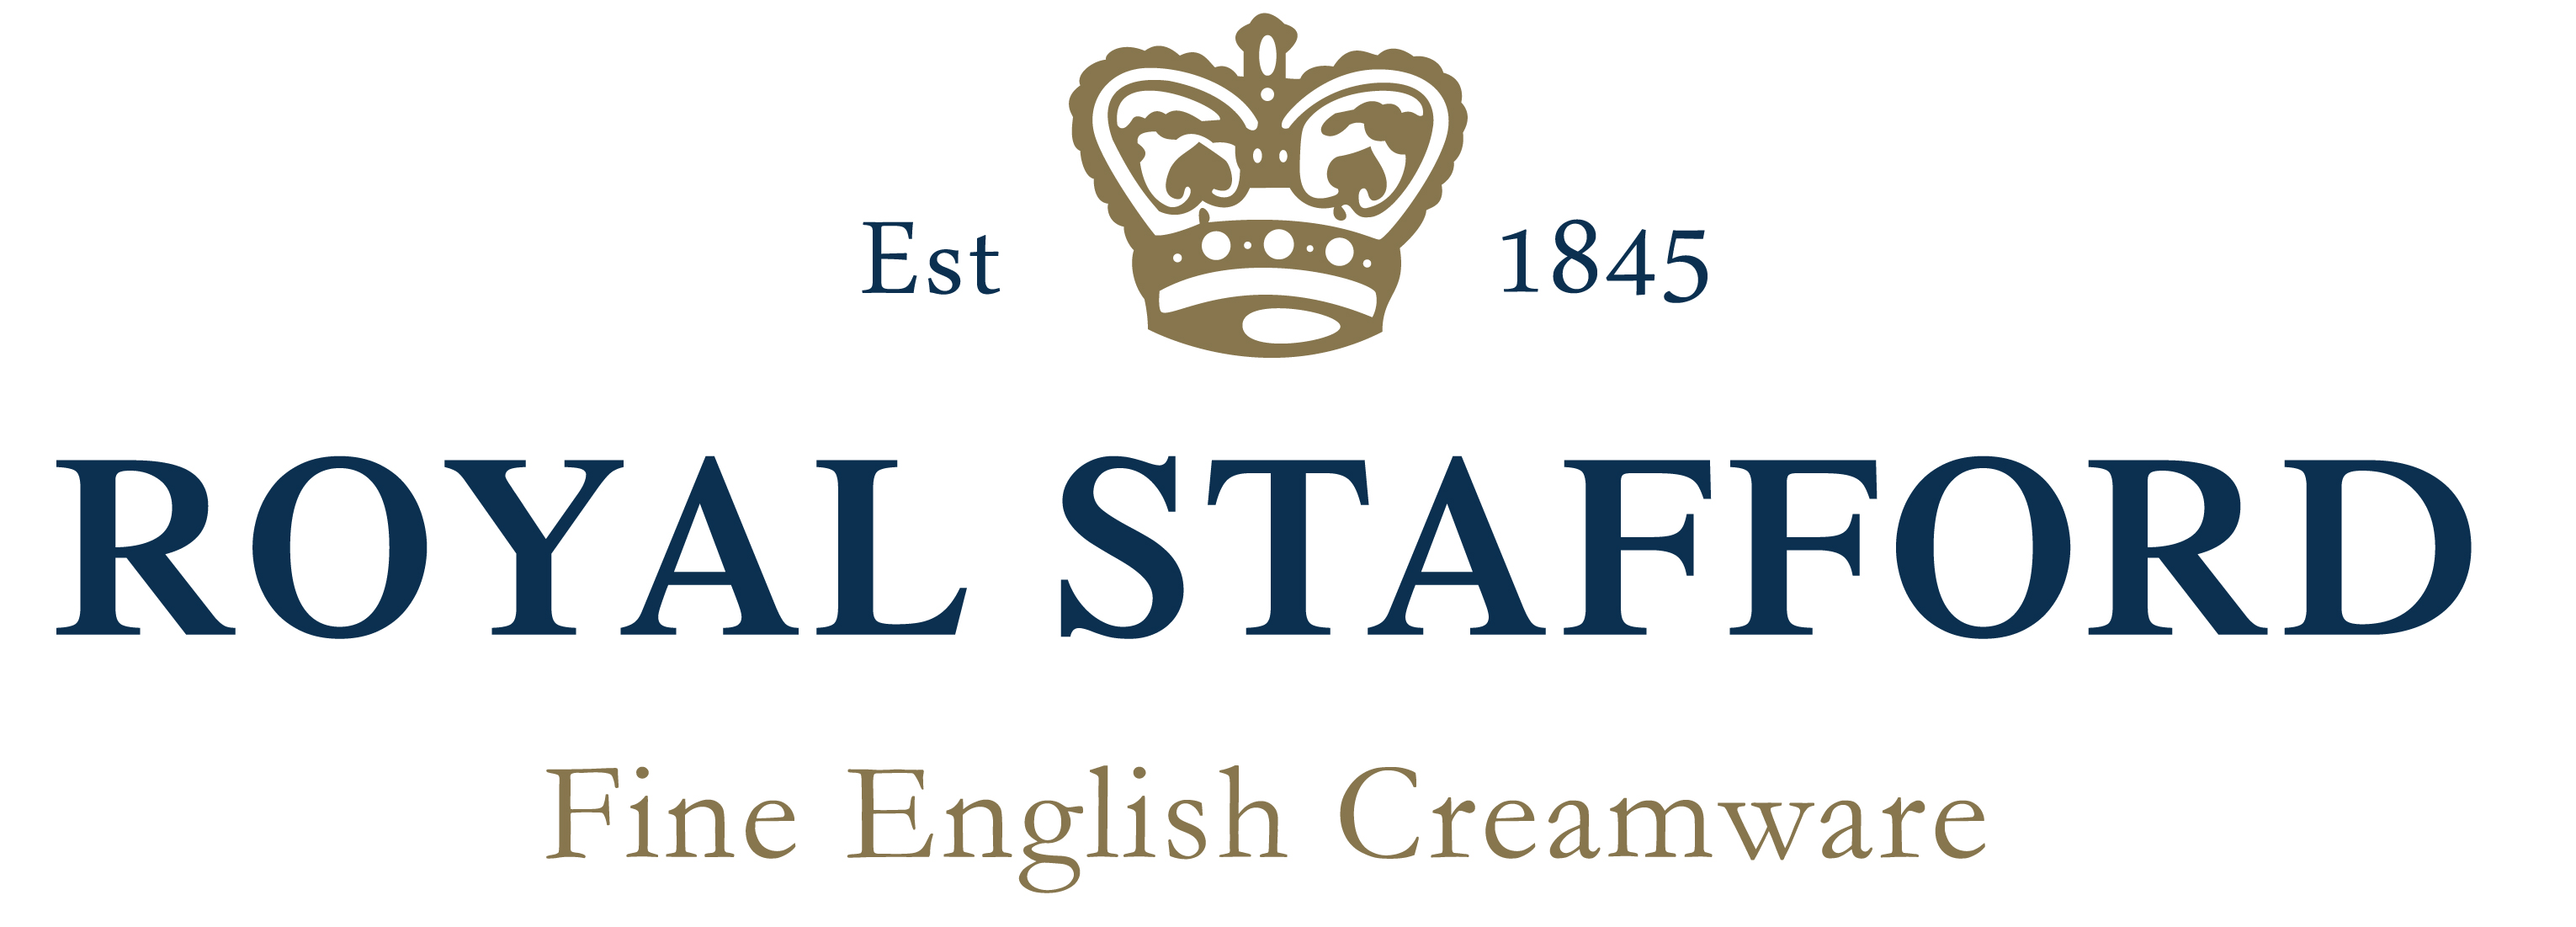 Royal Stafford - Fine English Creamware